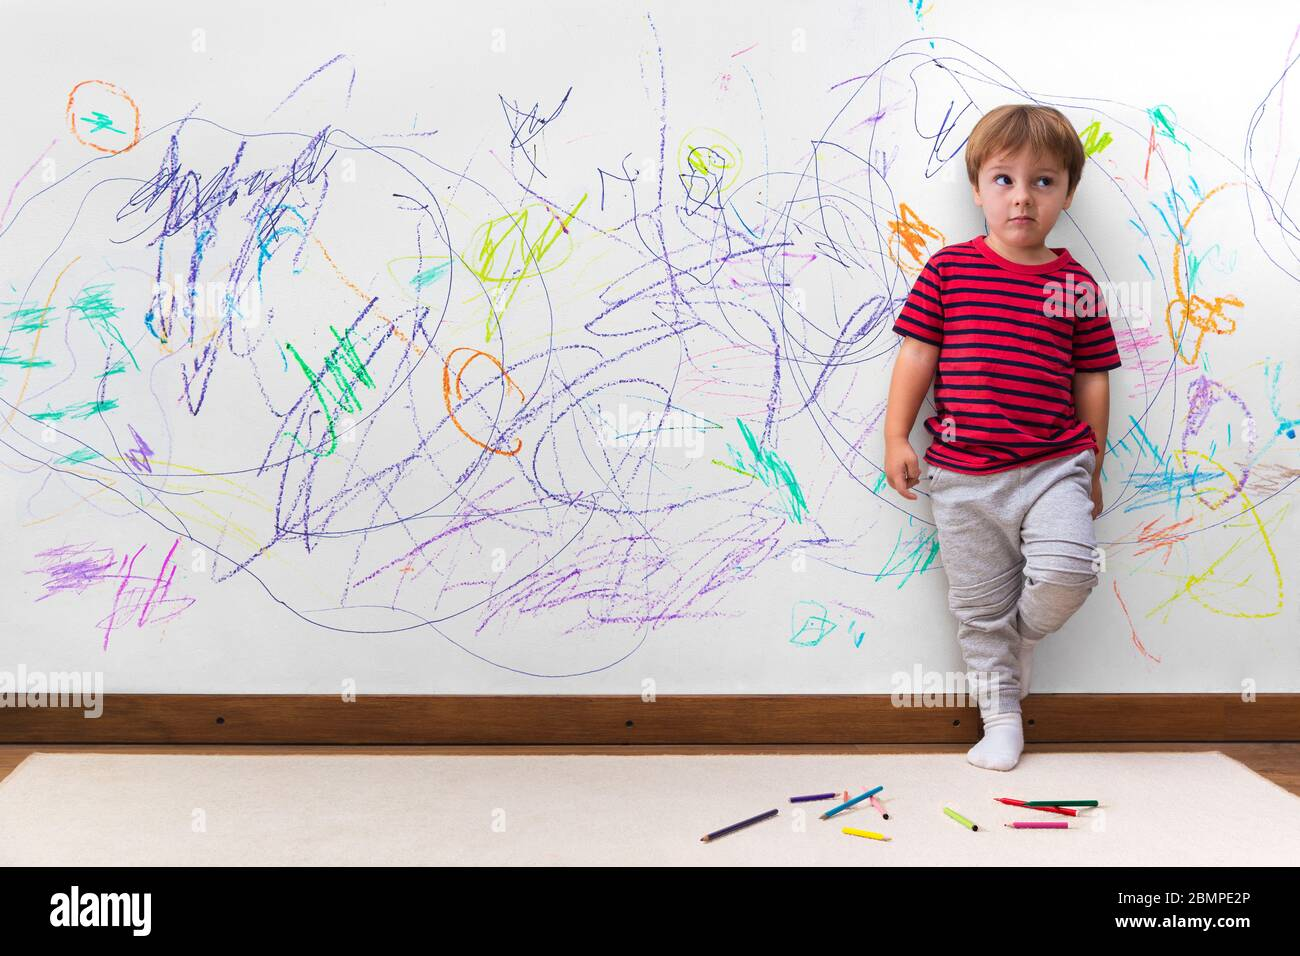 Child mischief. Boy with a distracted face because he drew the entire wall. Little boy leaning against the white wall where he made many drawings Stock Photo